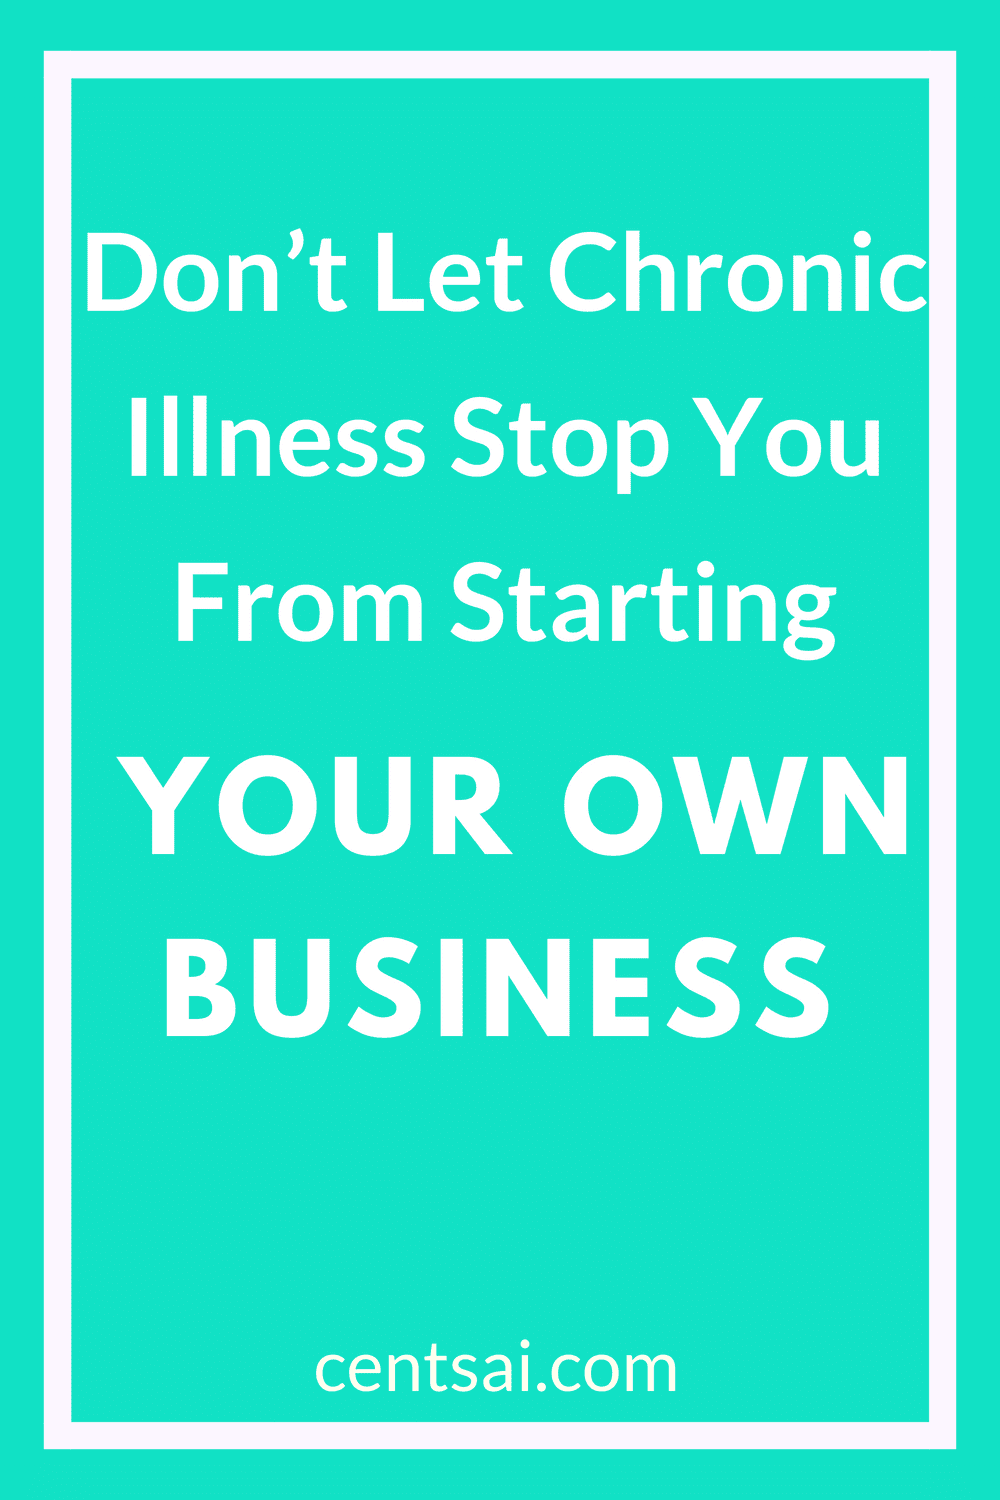 Don't Let Chronic Illness Stop You From Starting Your Own Business. One entrepreneur battling Crohn's disease shares his advice for starting your own business and make extra money idea while dealing with chronic illness. #ownbusiness #makemoneyfast #extramoneyideas